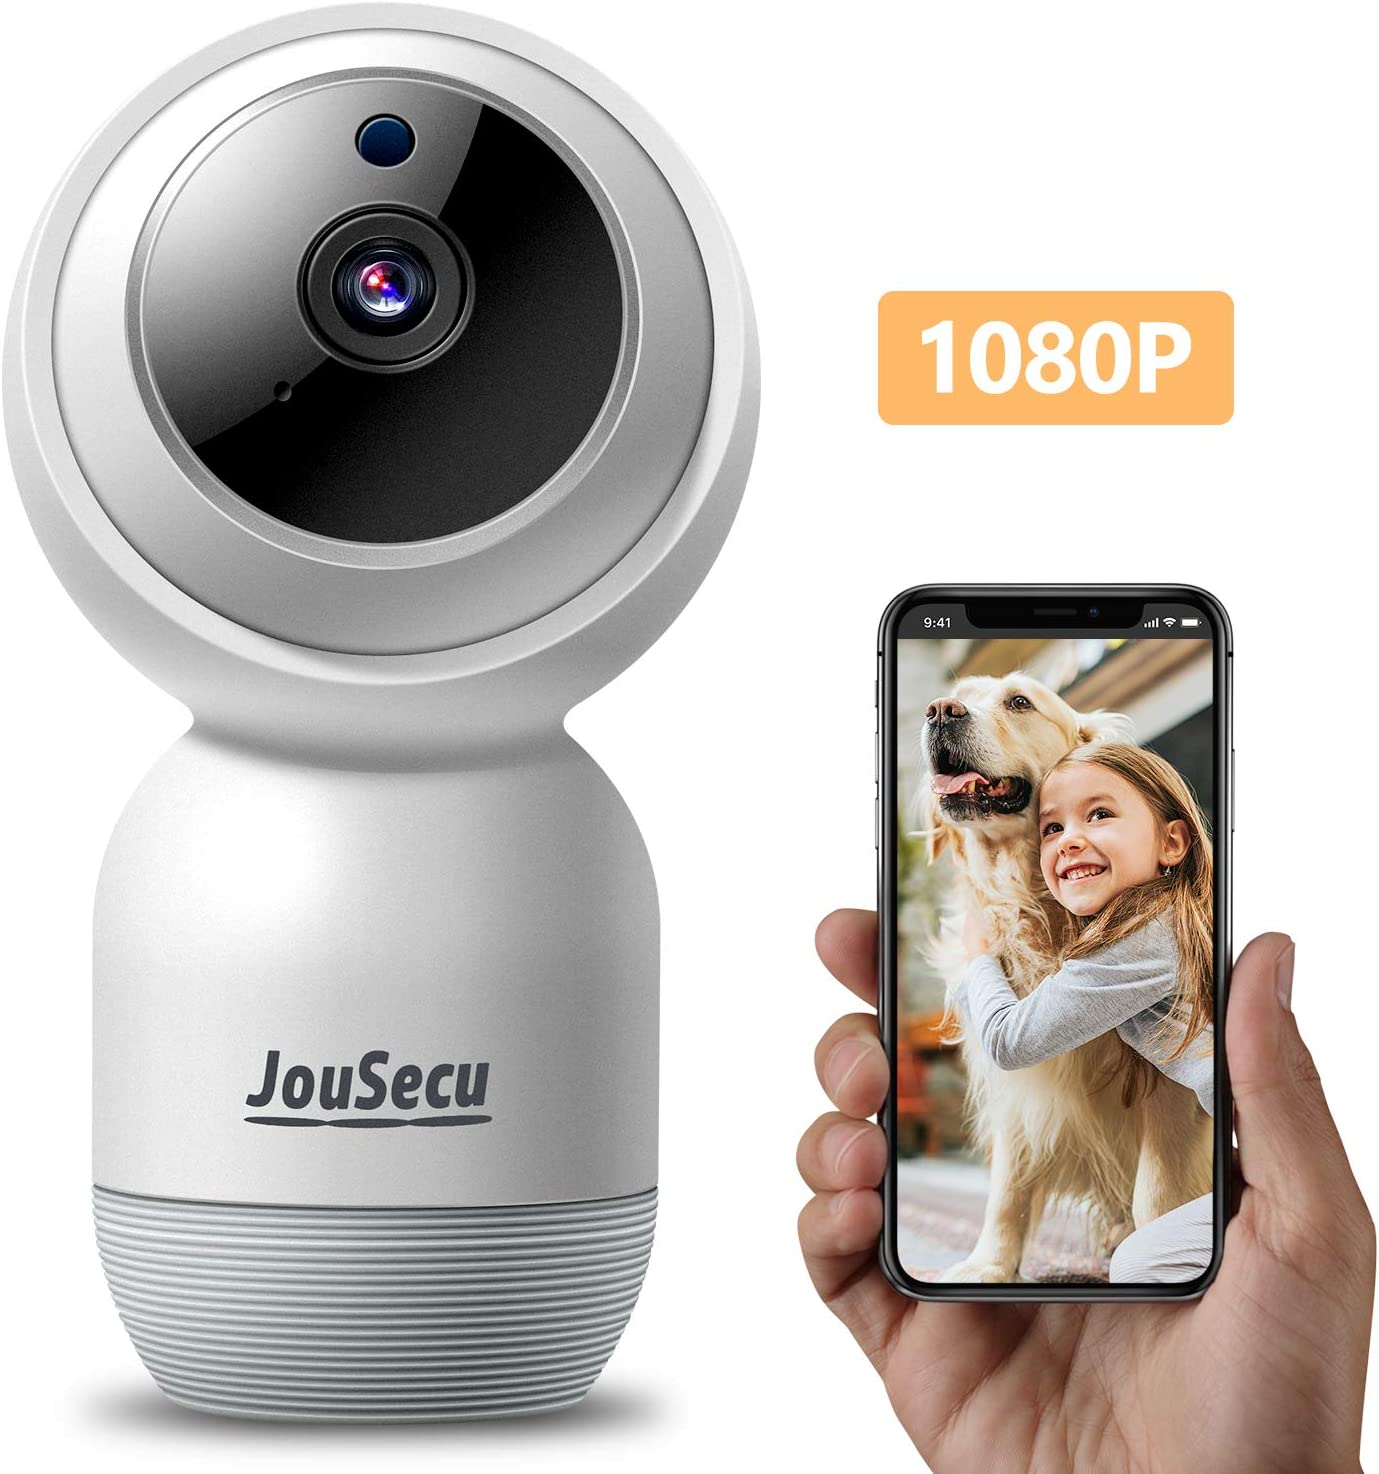 Indoor Security Camera Wireless IP Camera JouSecu Dome Camera 1080p PTZ Baby Crying/Motion Detection 2-Way Audio Night Vision Suitable for Surveillance Home Elder Nanny Pet Dog Safety 2.4G WiFi